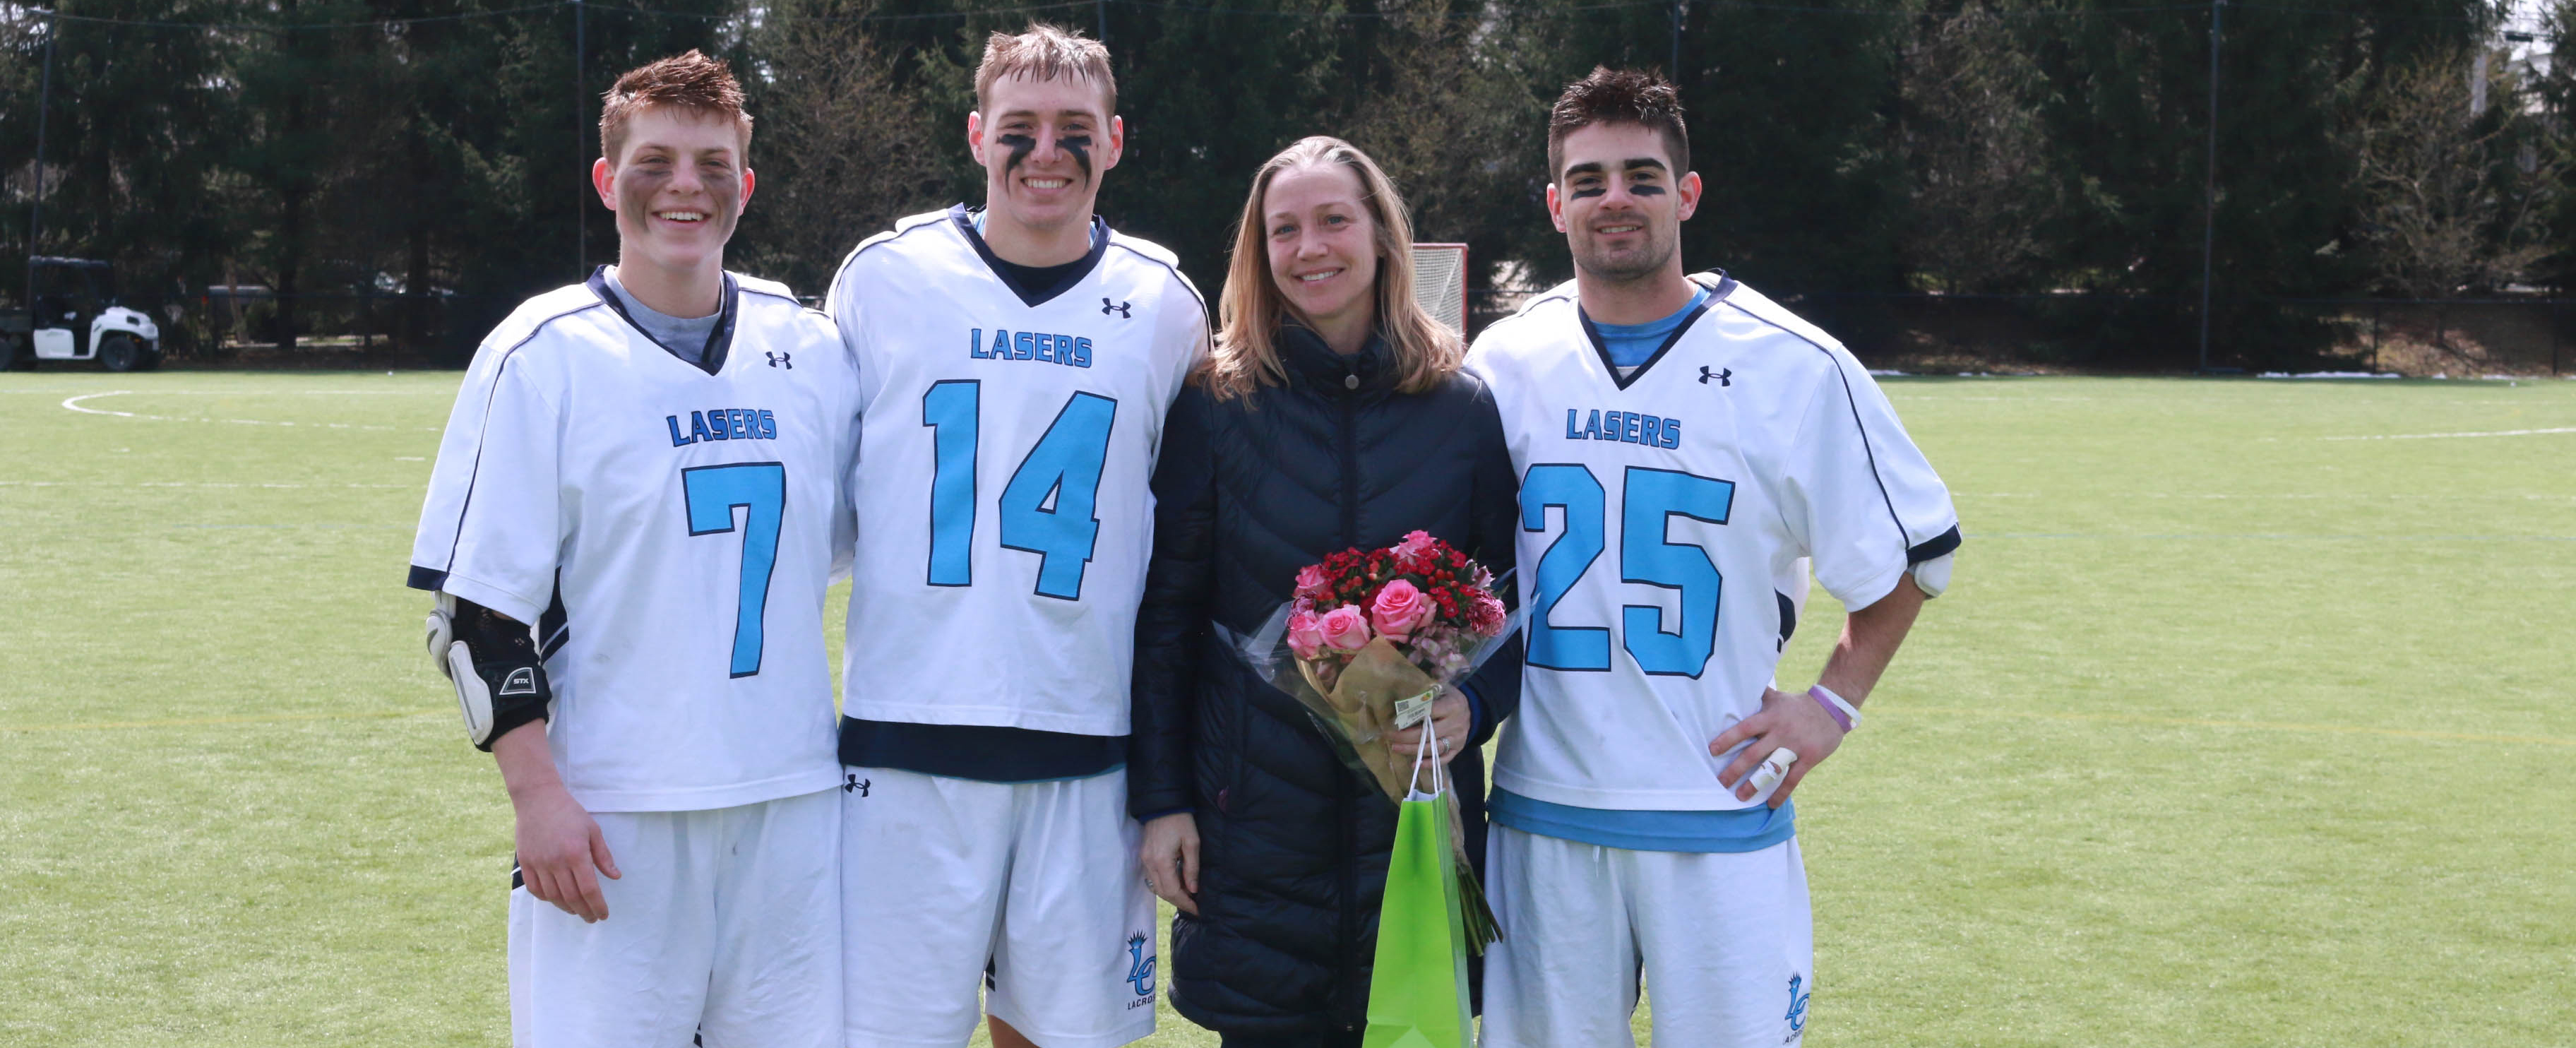 Lasers Avenge Mustangs 9-7 in Appreciation of Professor Karin Raye